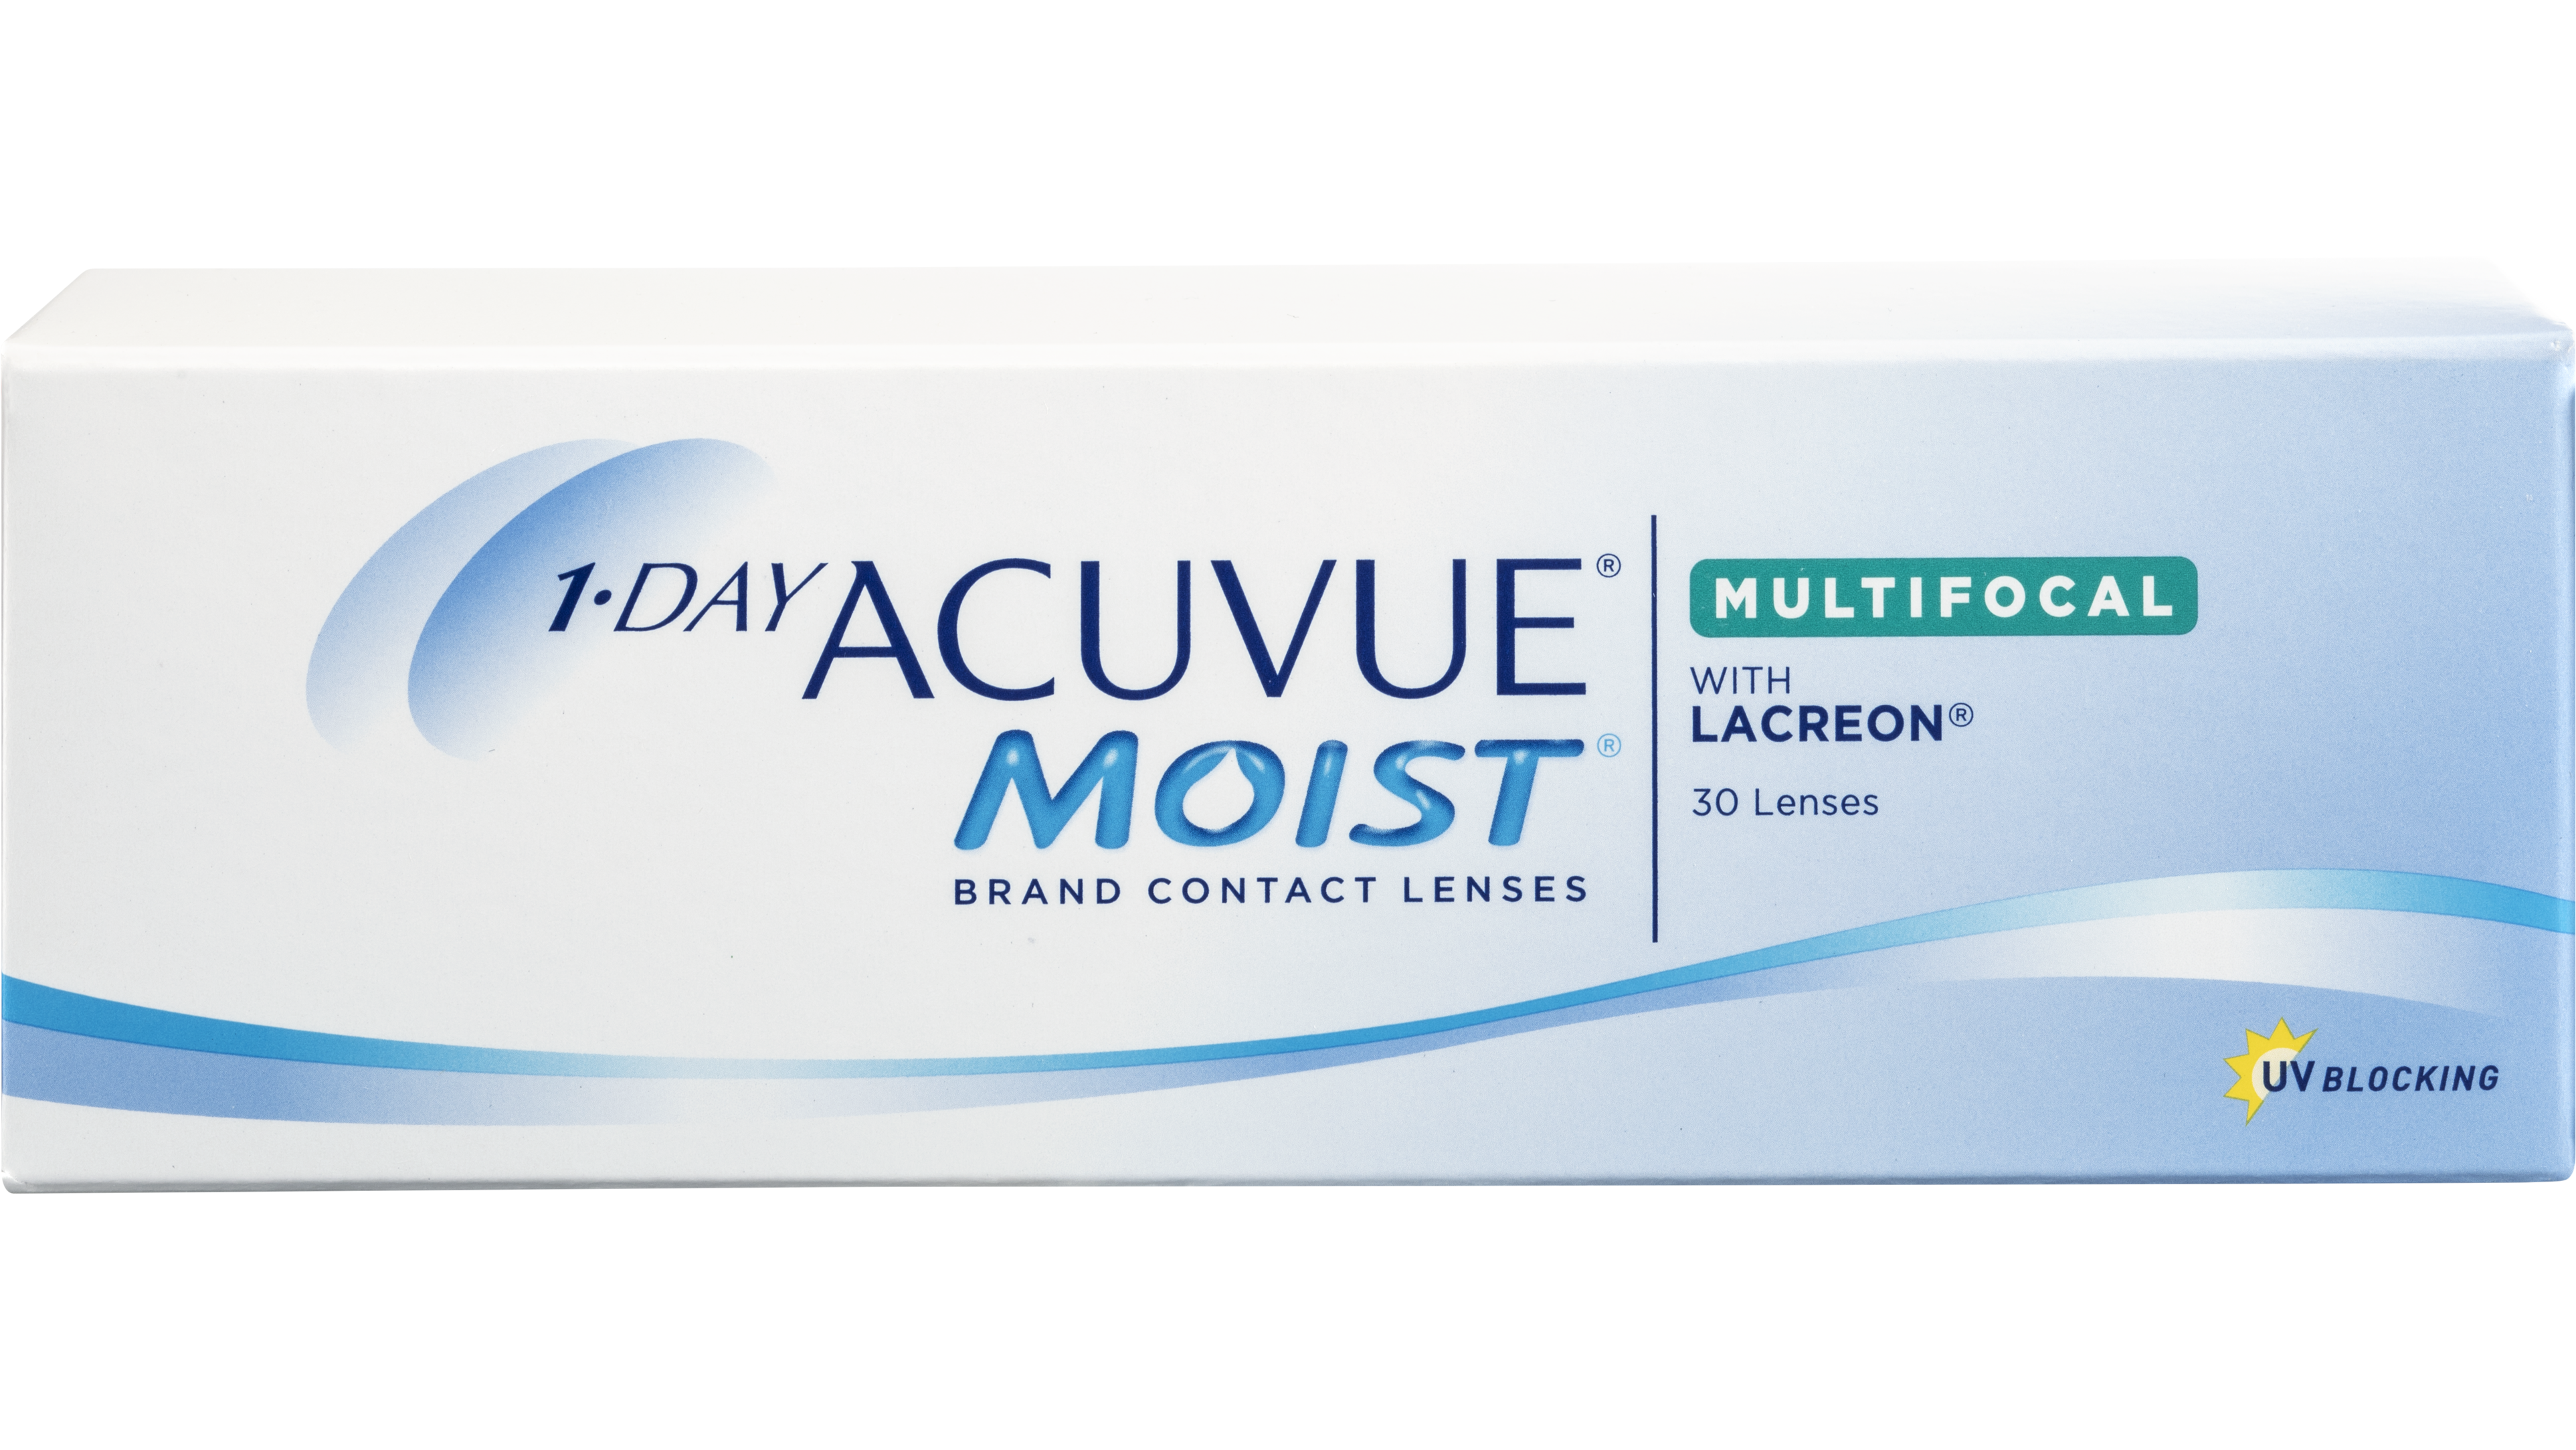 Front 1 Day Acuvue Moist Multifocaal